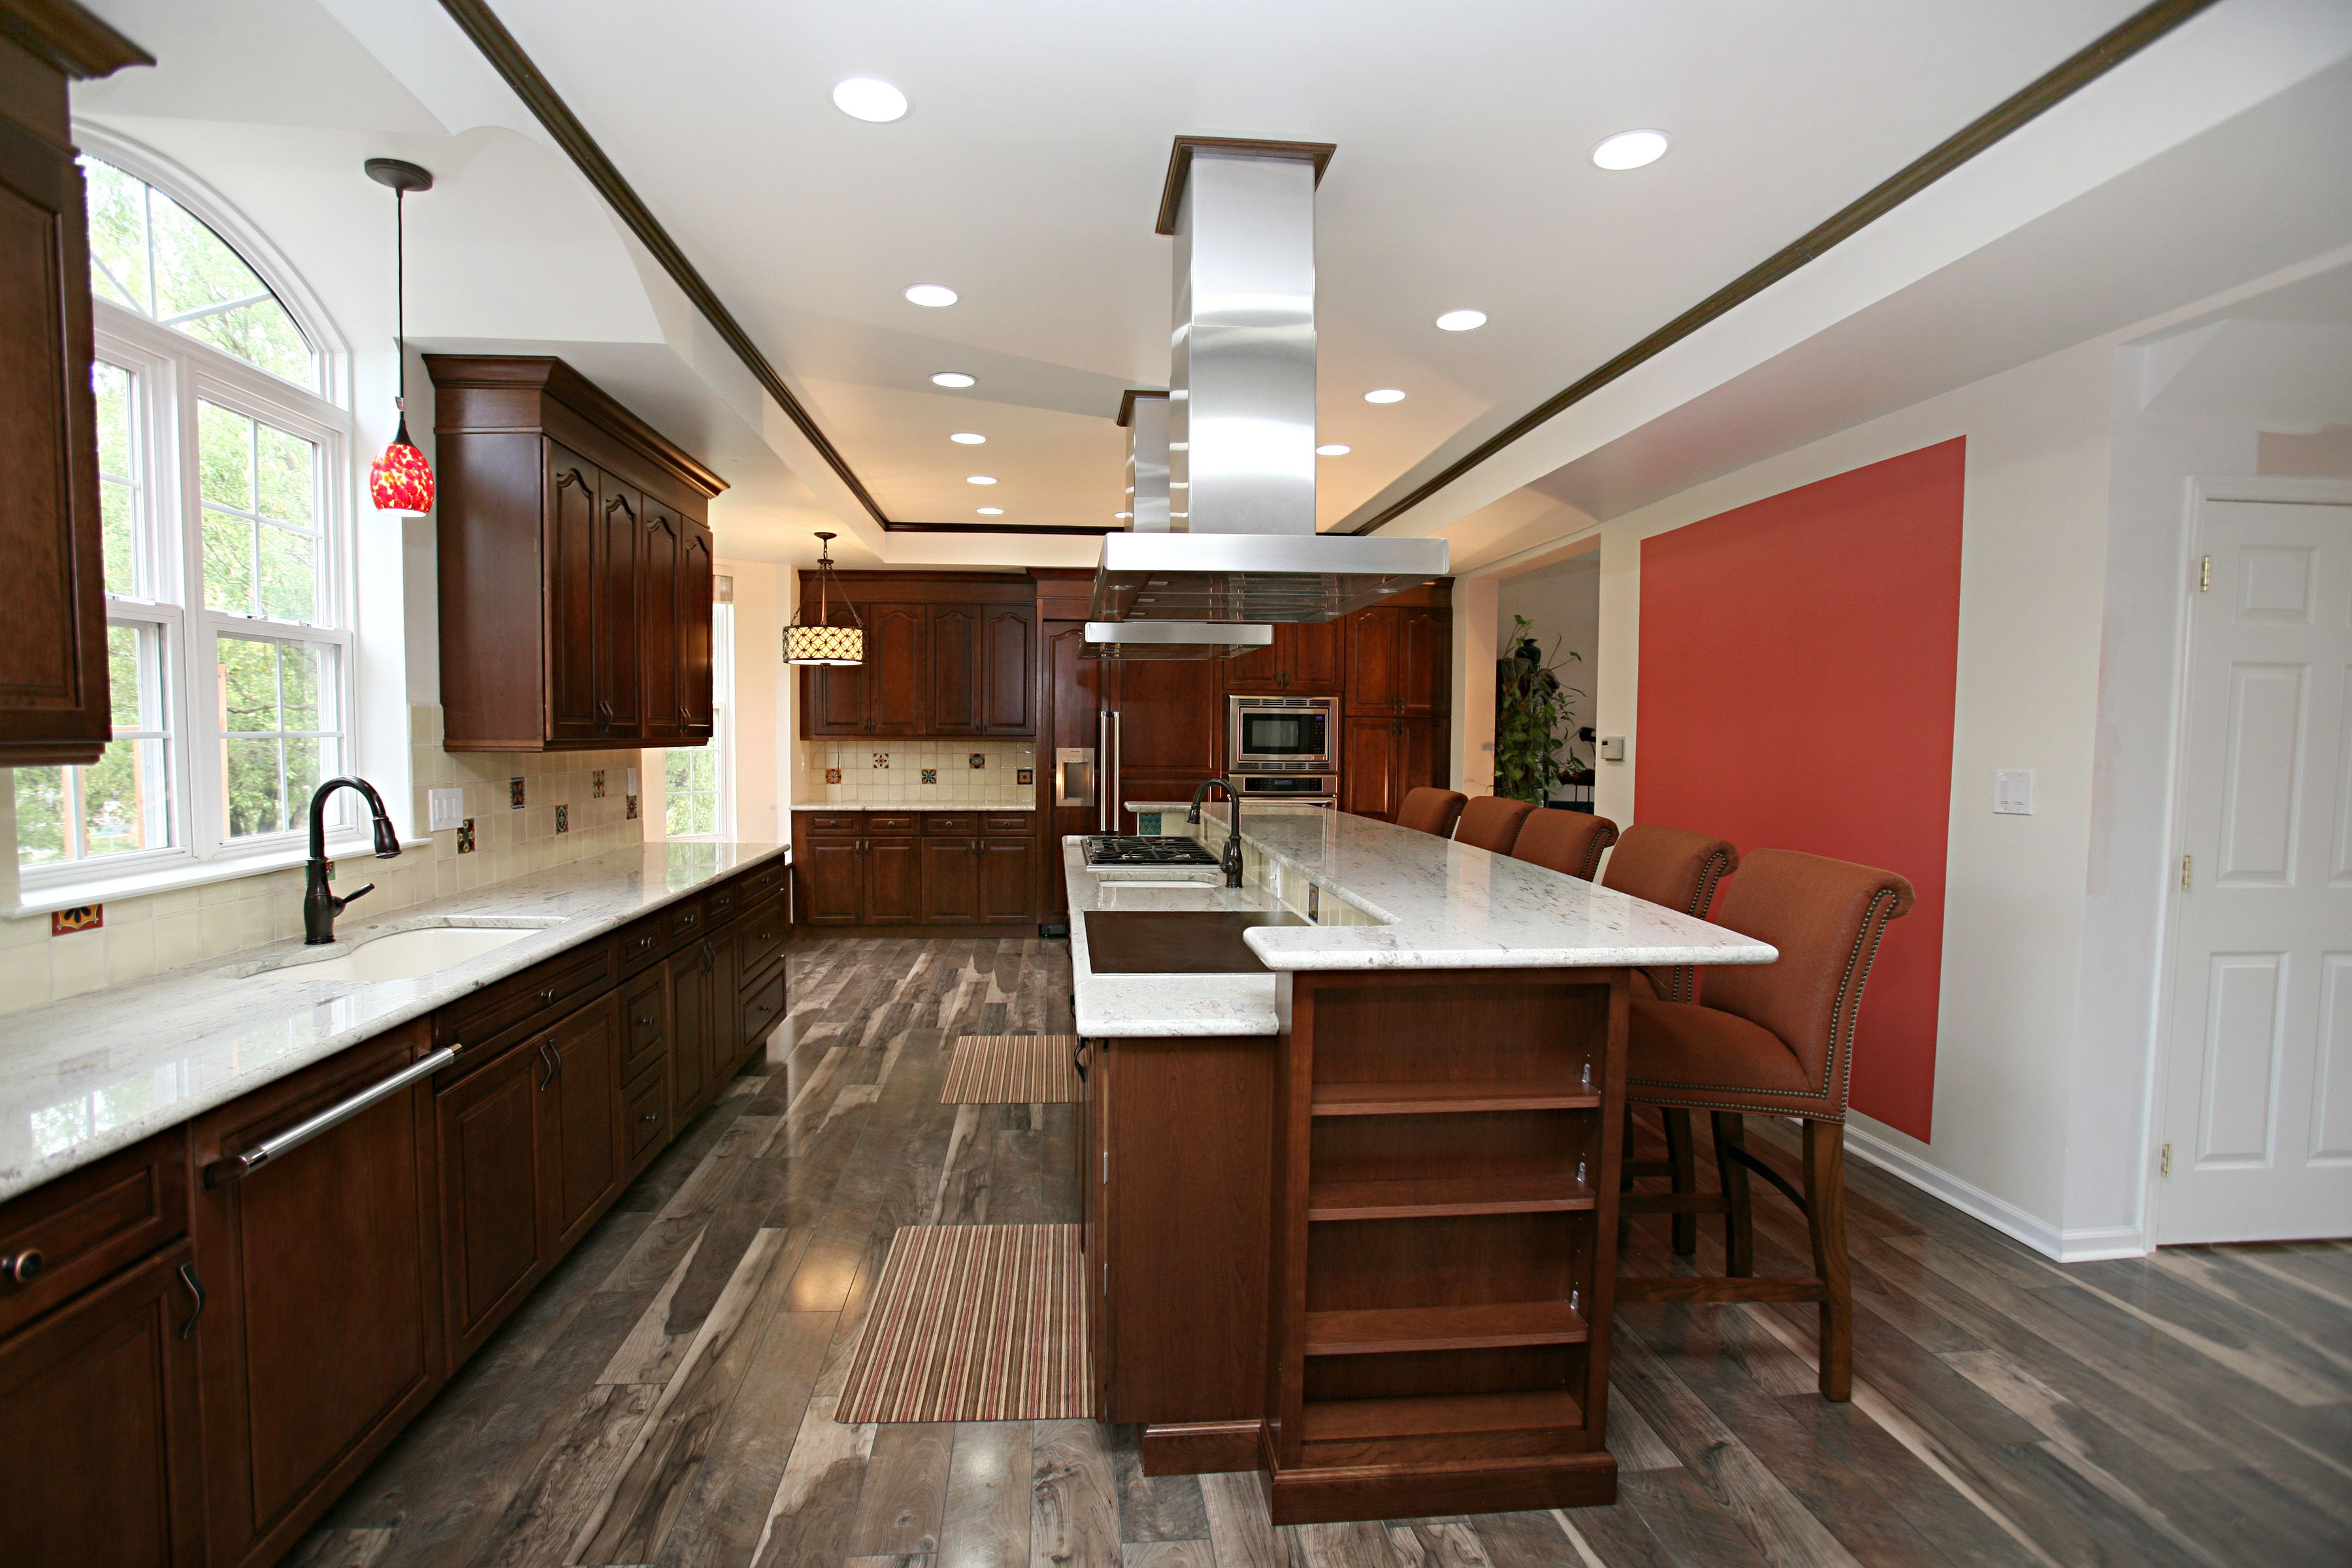 Wood Like Floor With Cherry Cabinets Google Search Hardwood Design Cherry Cabinets Kitchen Flooring